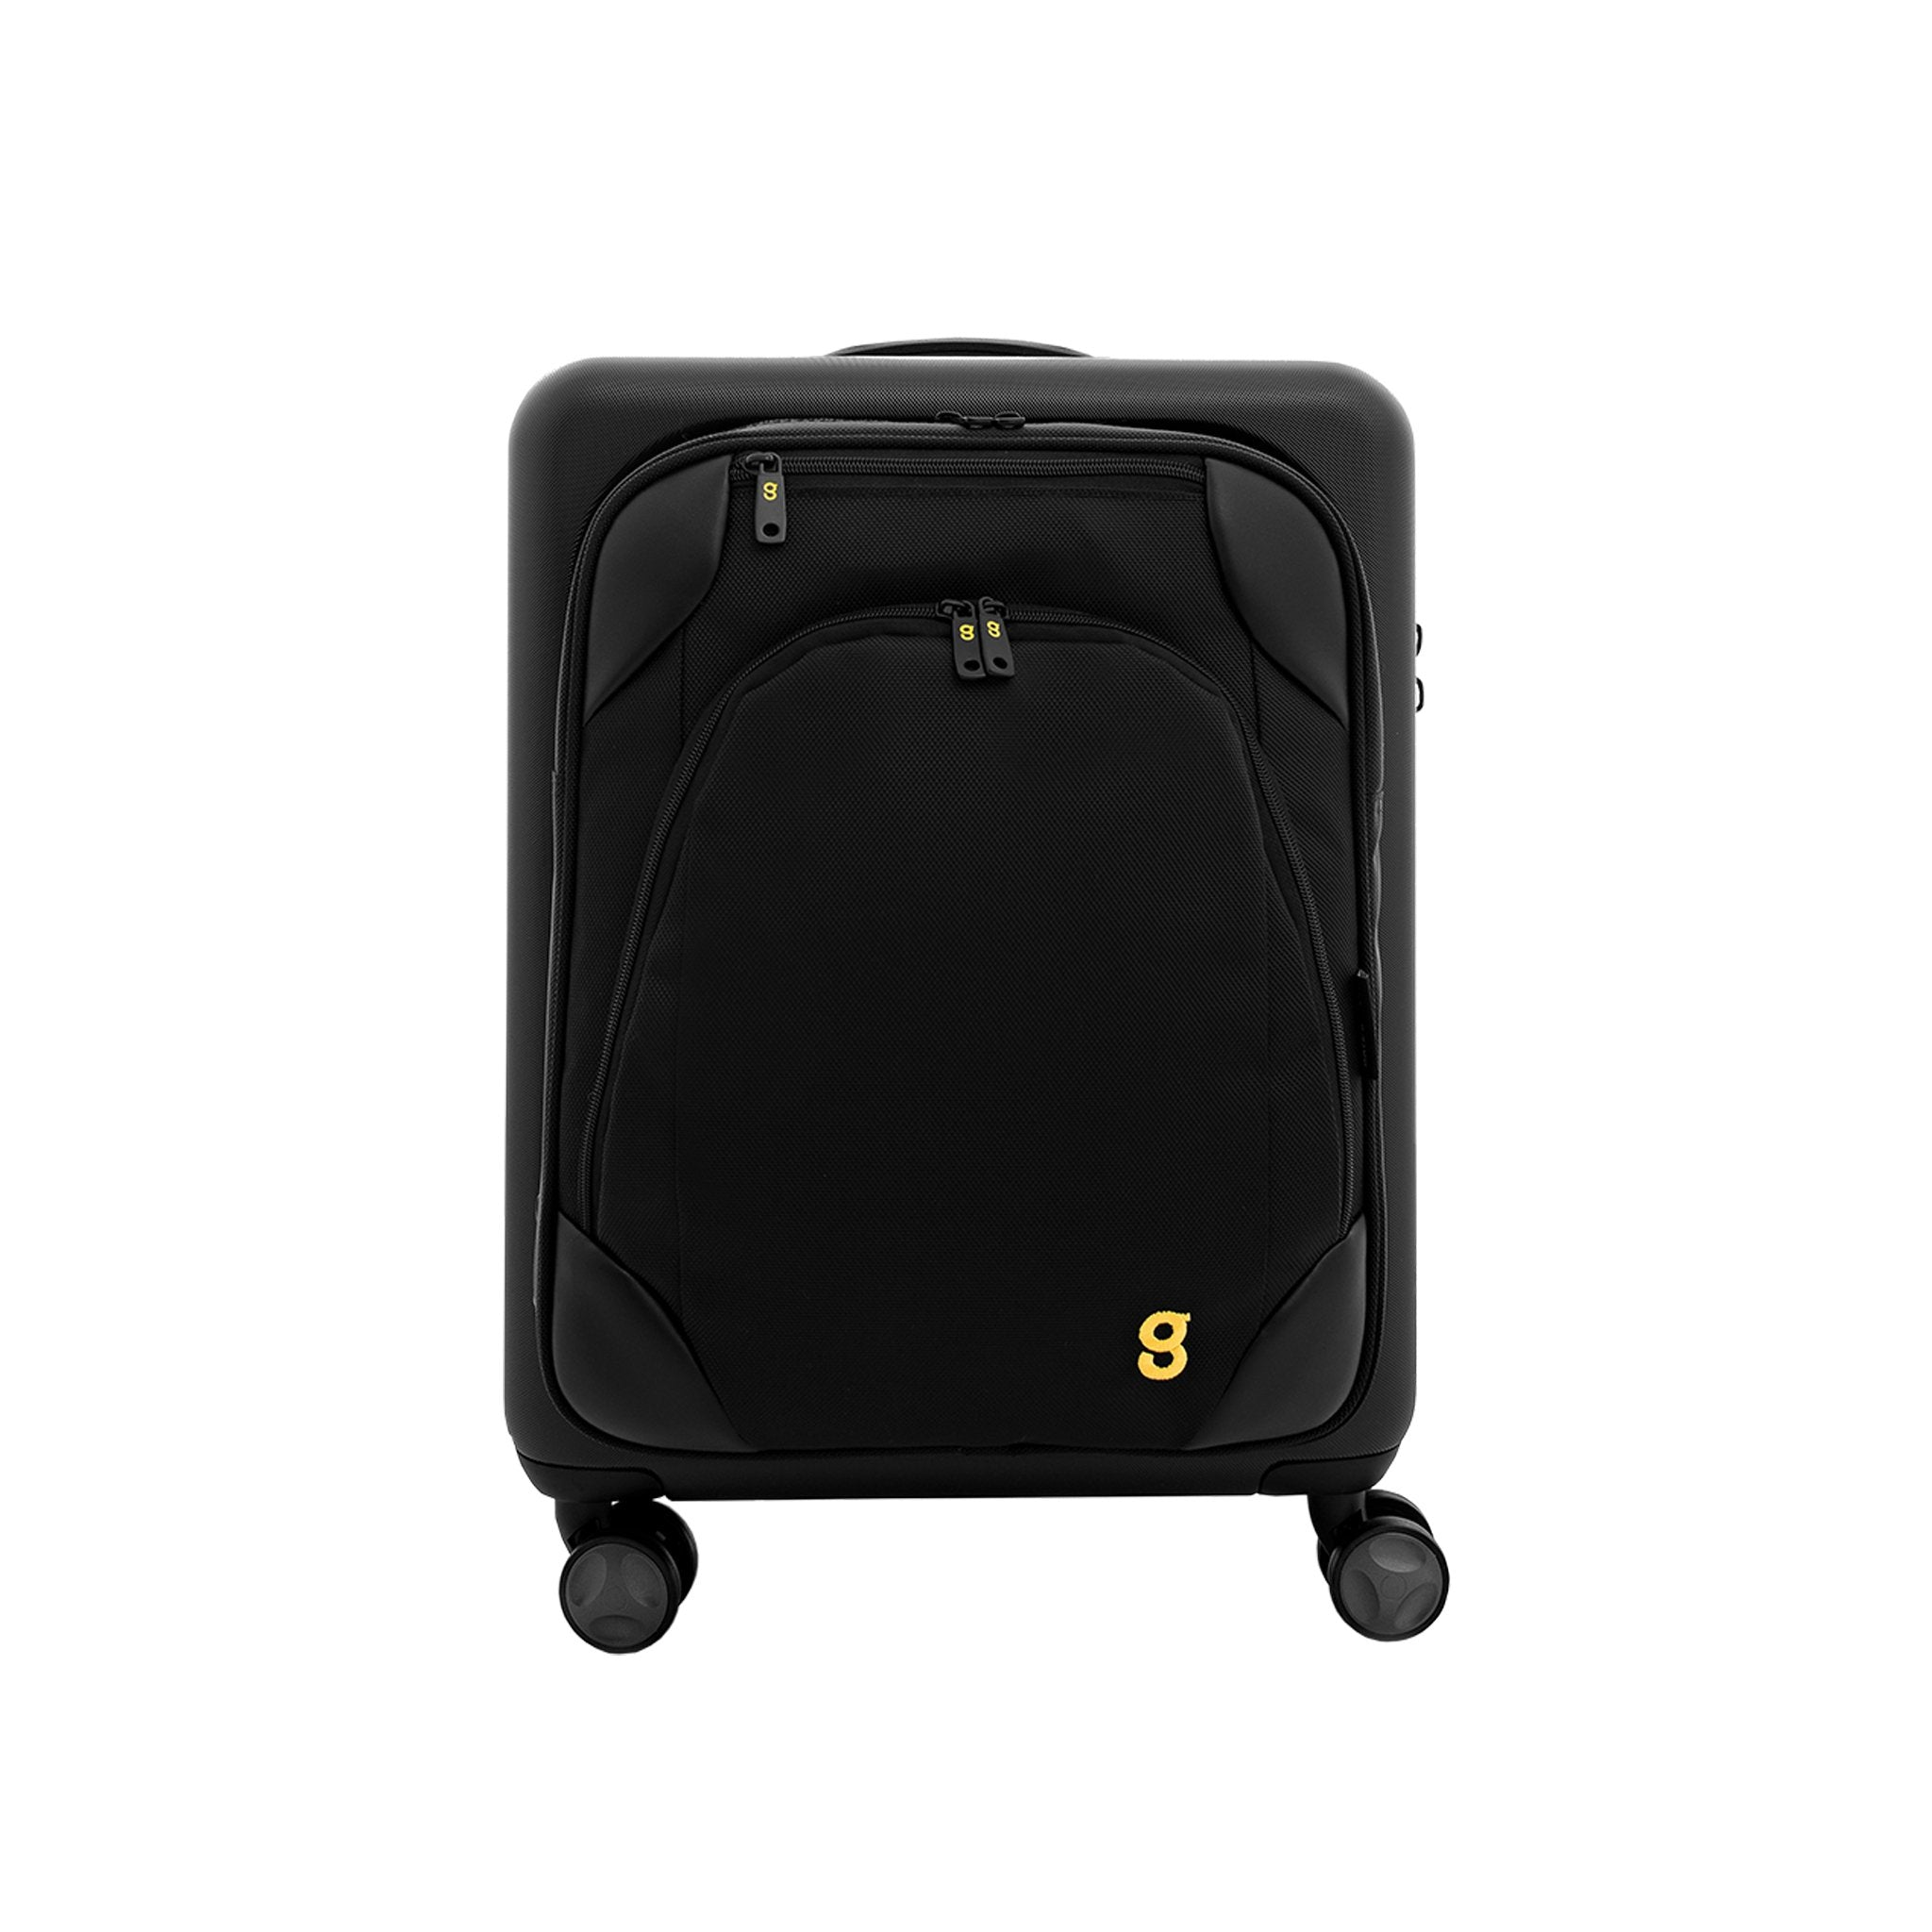 Spin MATE Plus-[varient_title]- gate-8-luggage